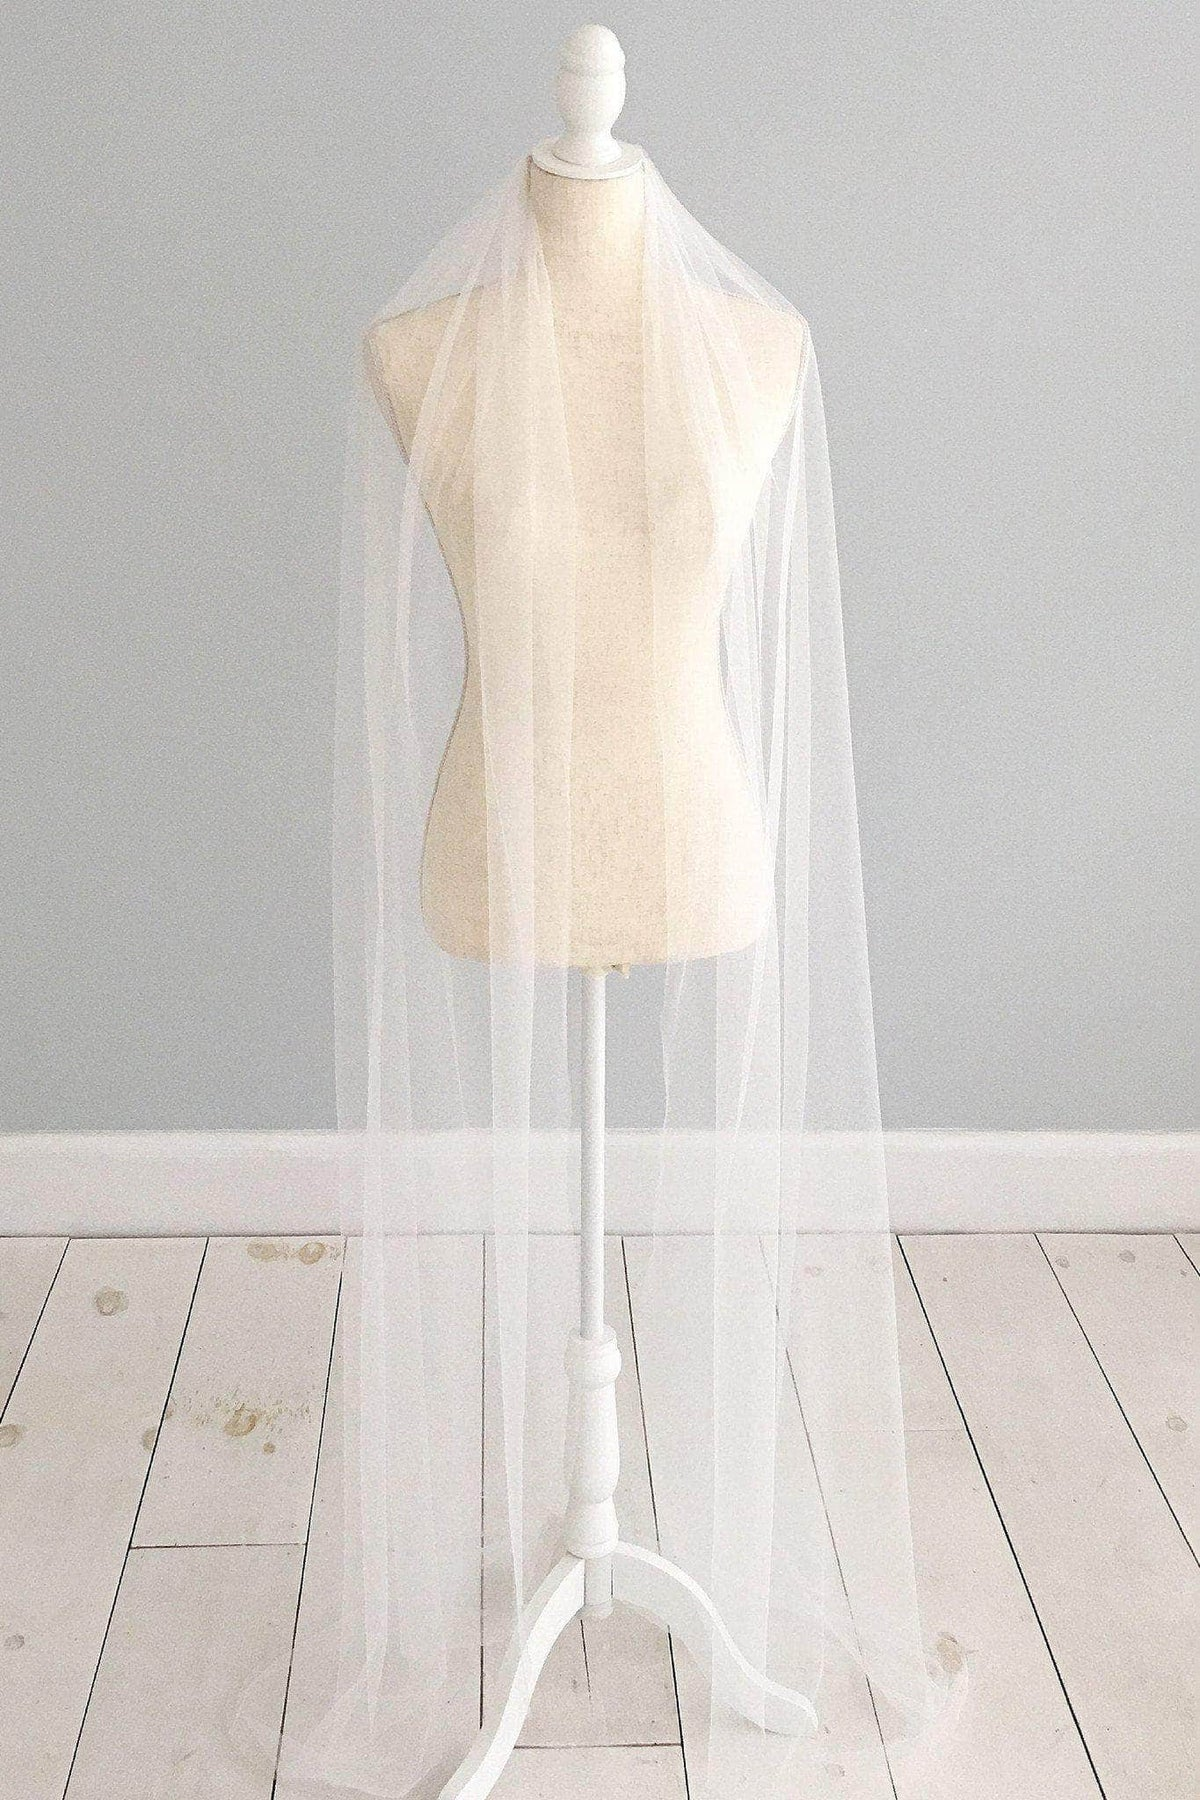 Wedding Veil Single tier cut edge silk style wedding veil - 'Isabella'